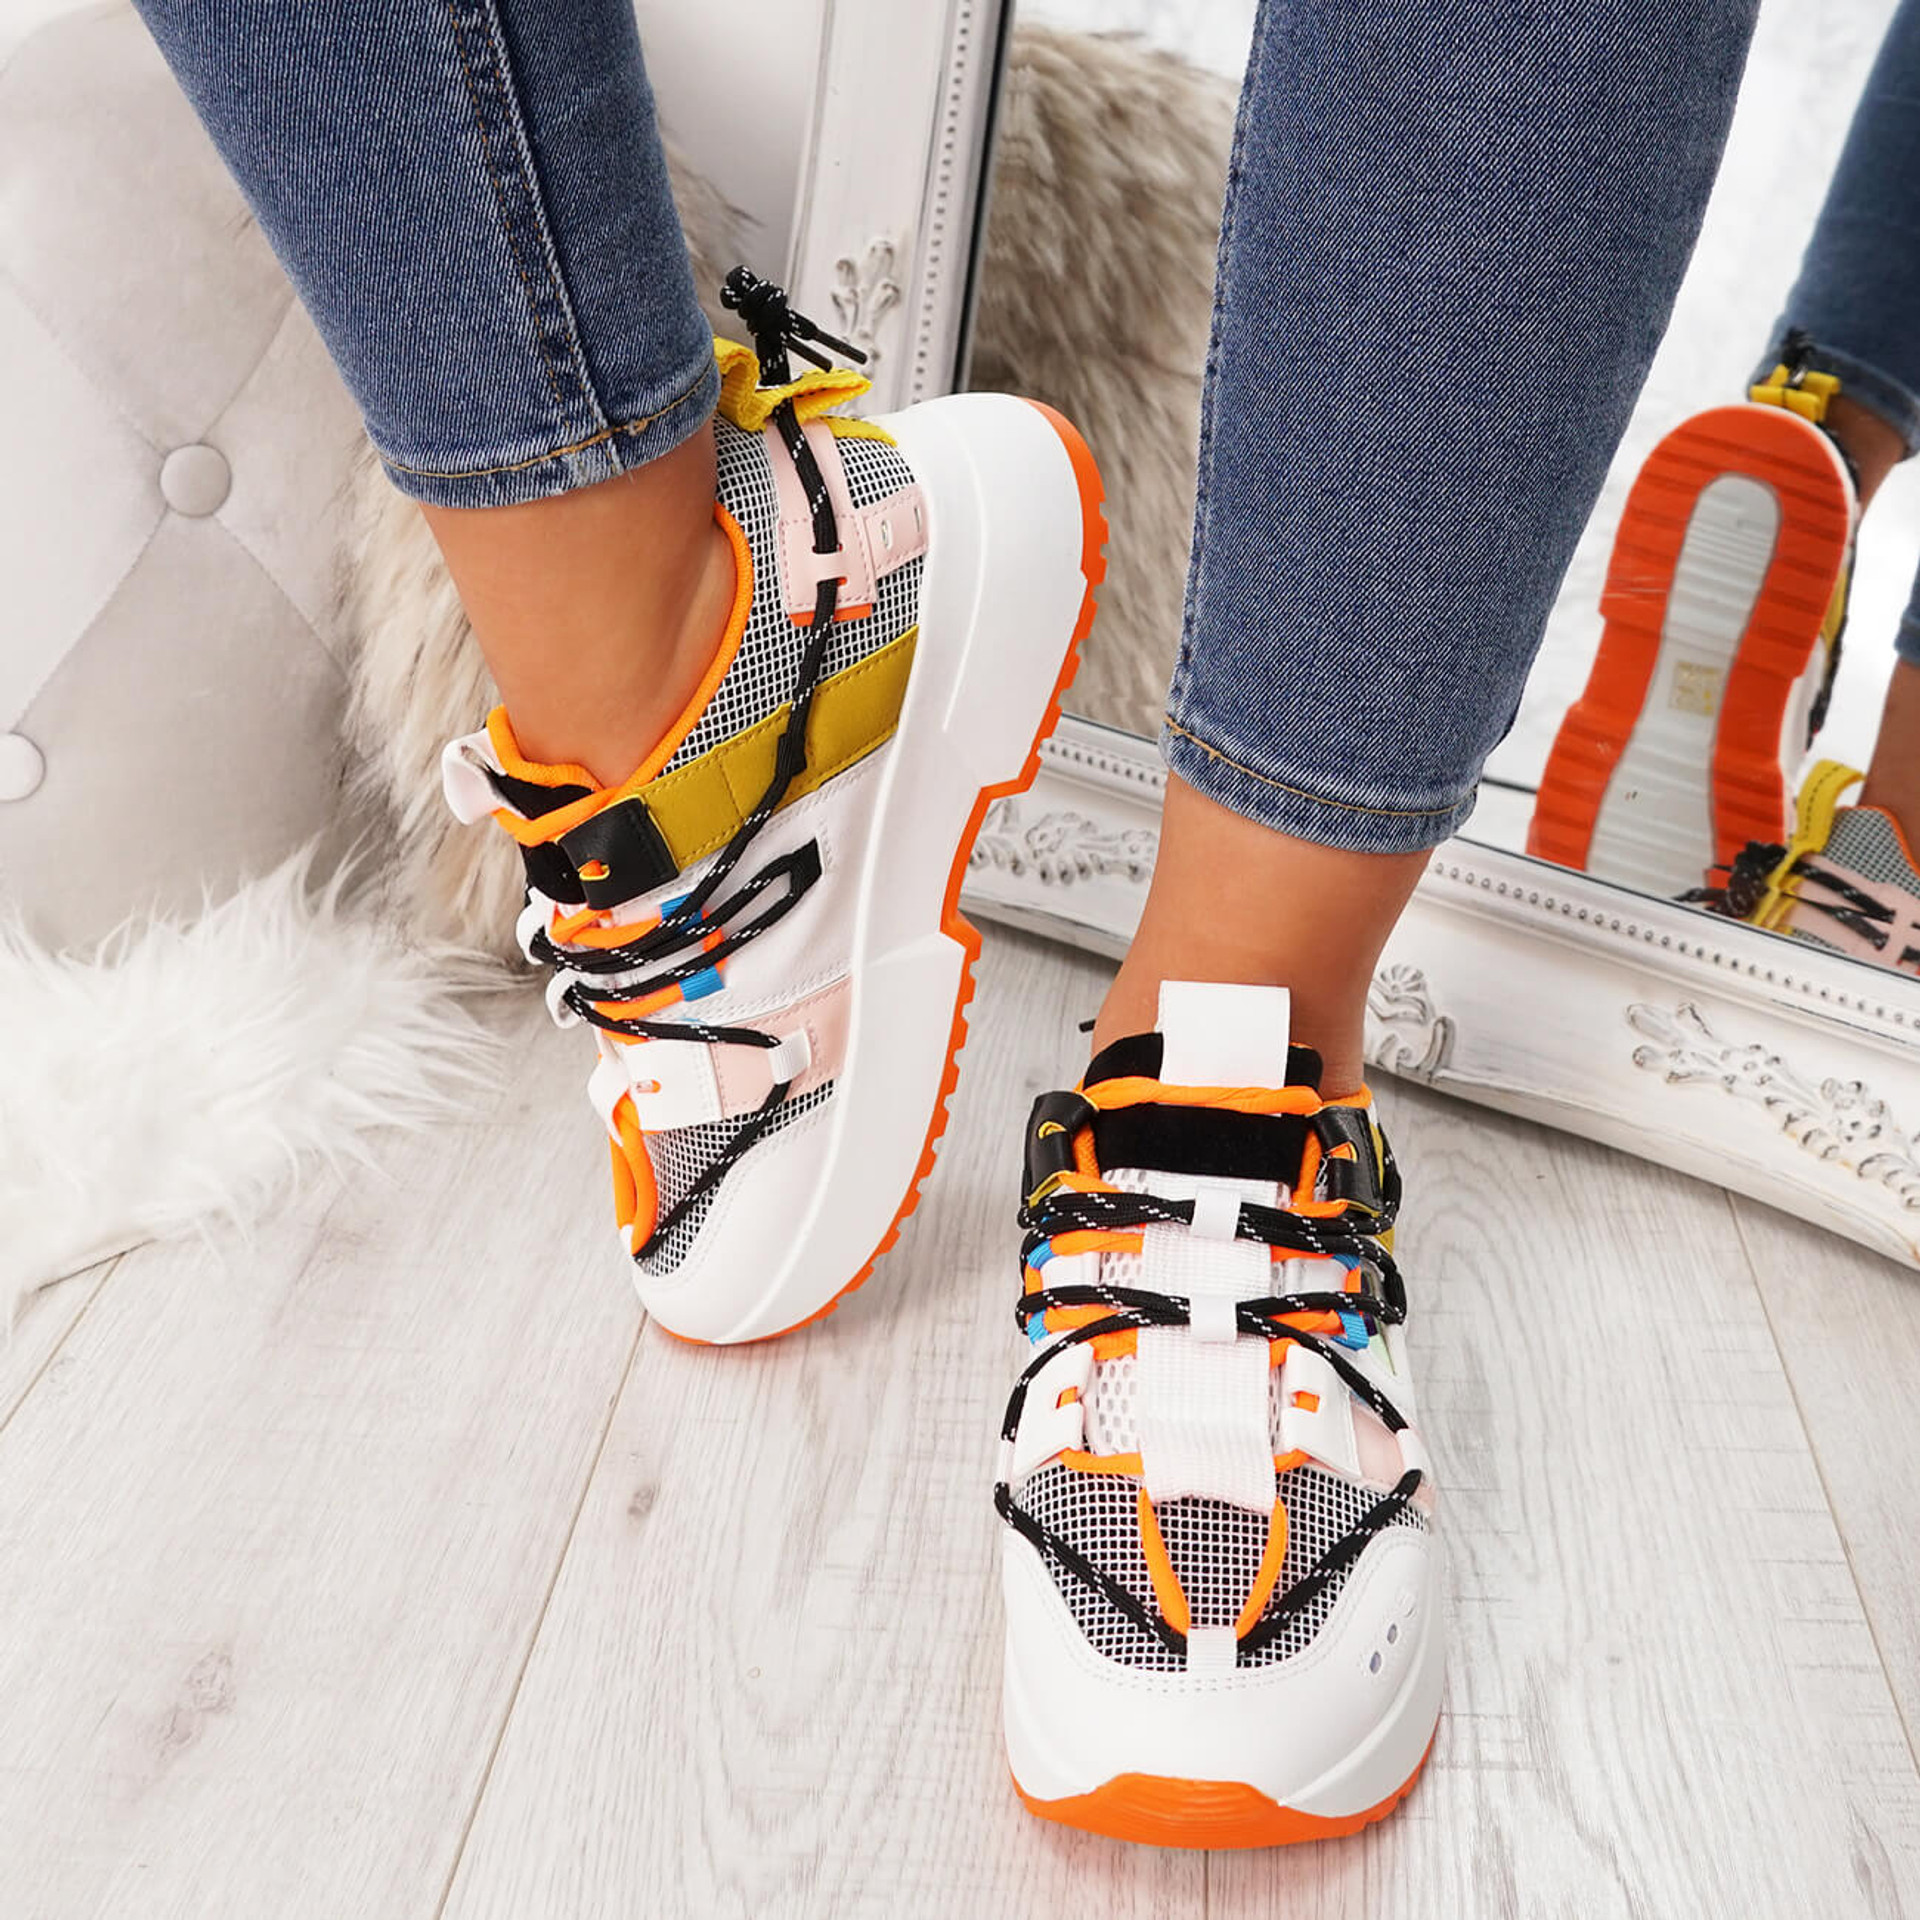 Women Sport Sneakers Ladies Womens Orange White Chunky Sole Trainers Platform Party Shoes Size Uk 3 4 5 6 7 8 - Buy Now Pay Later with Klarna